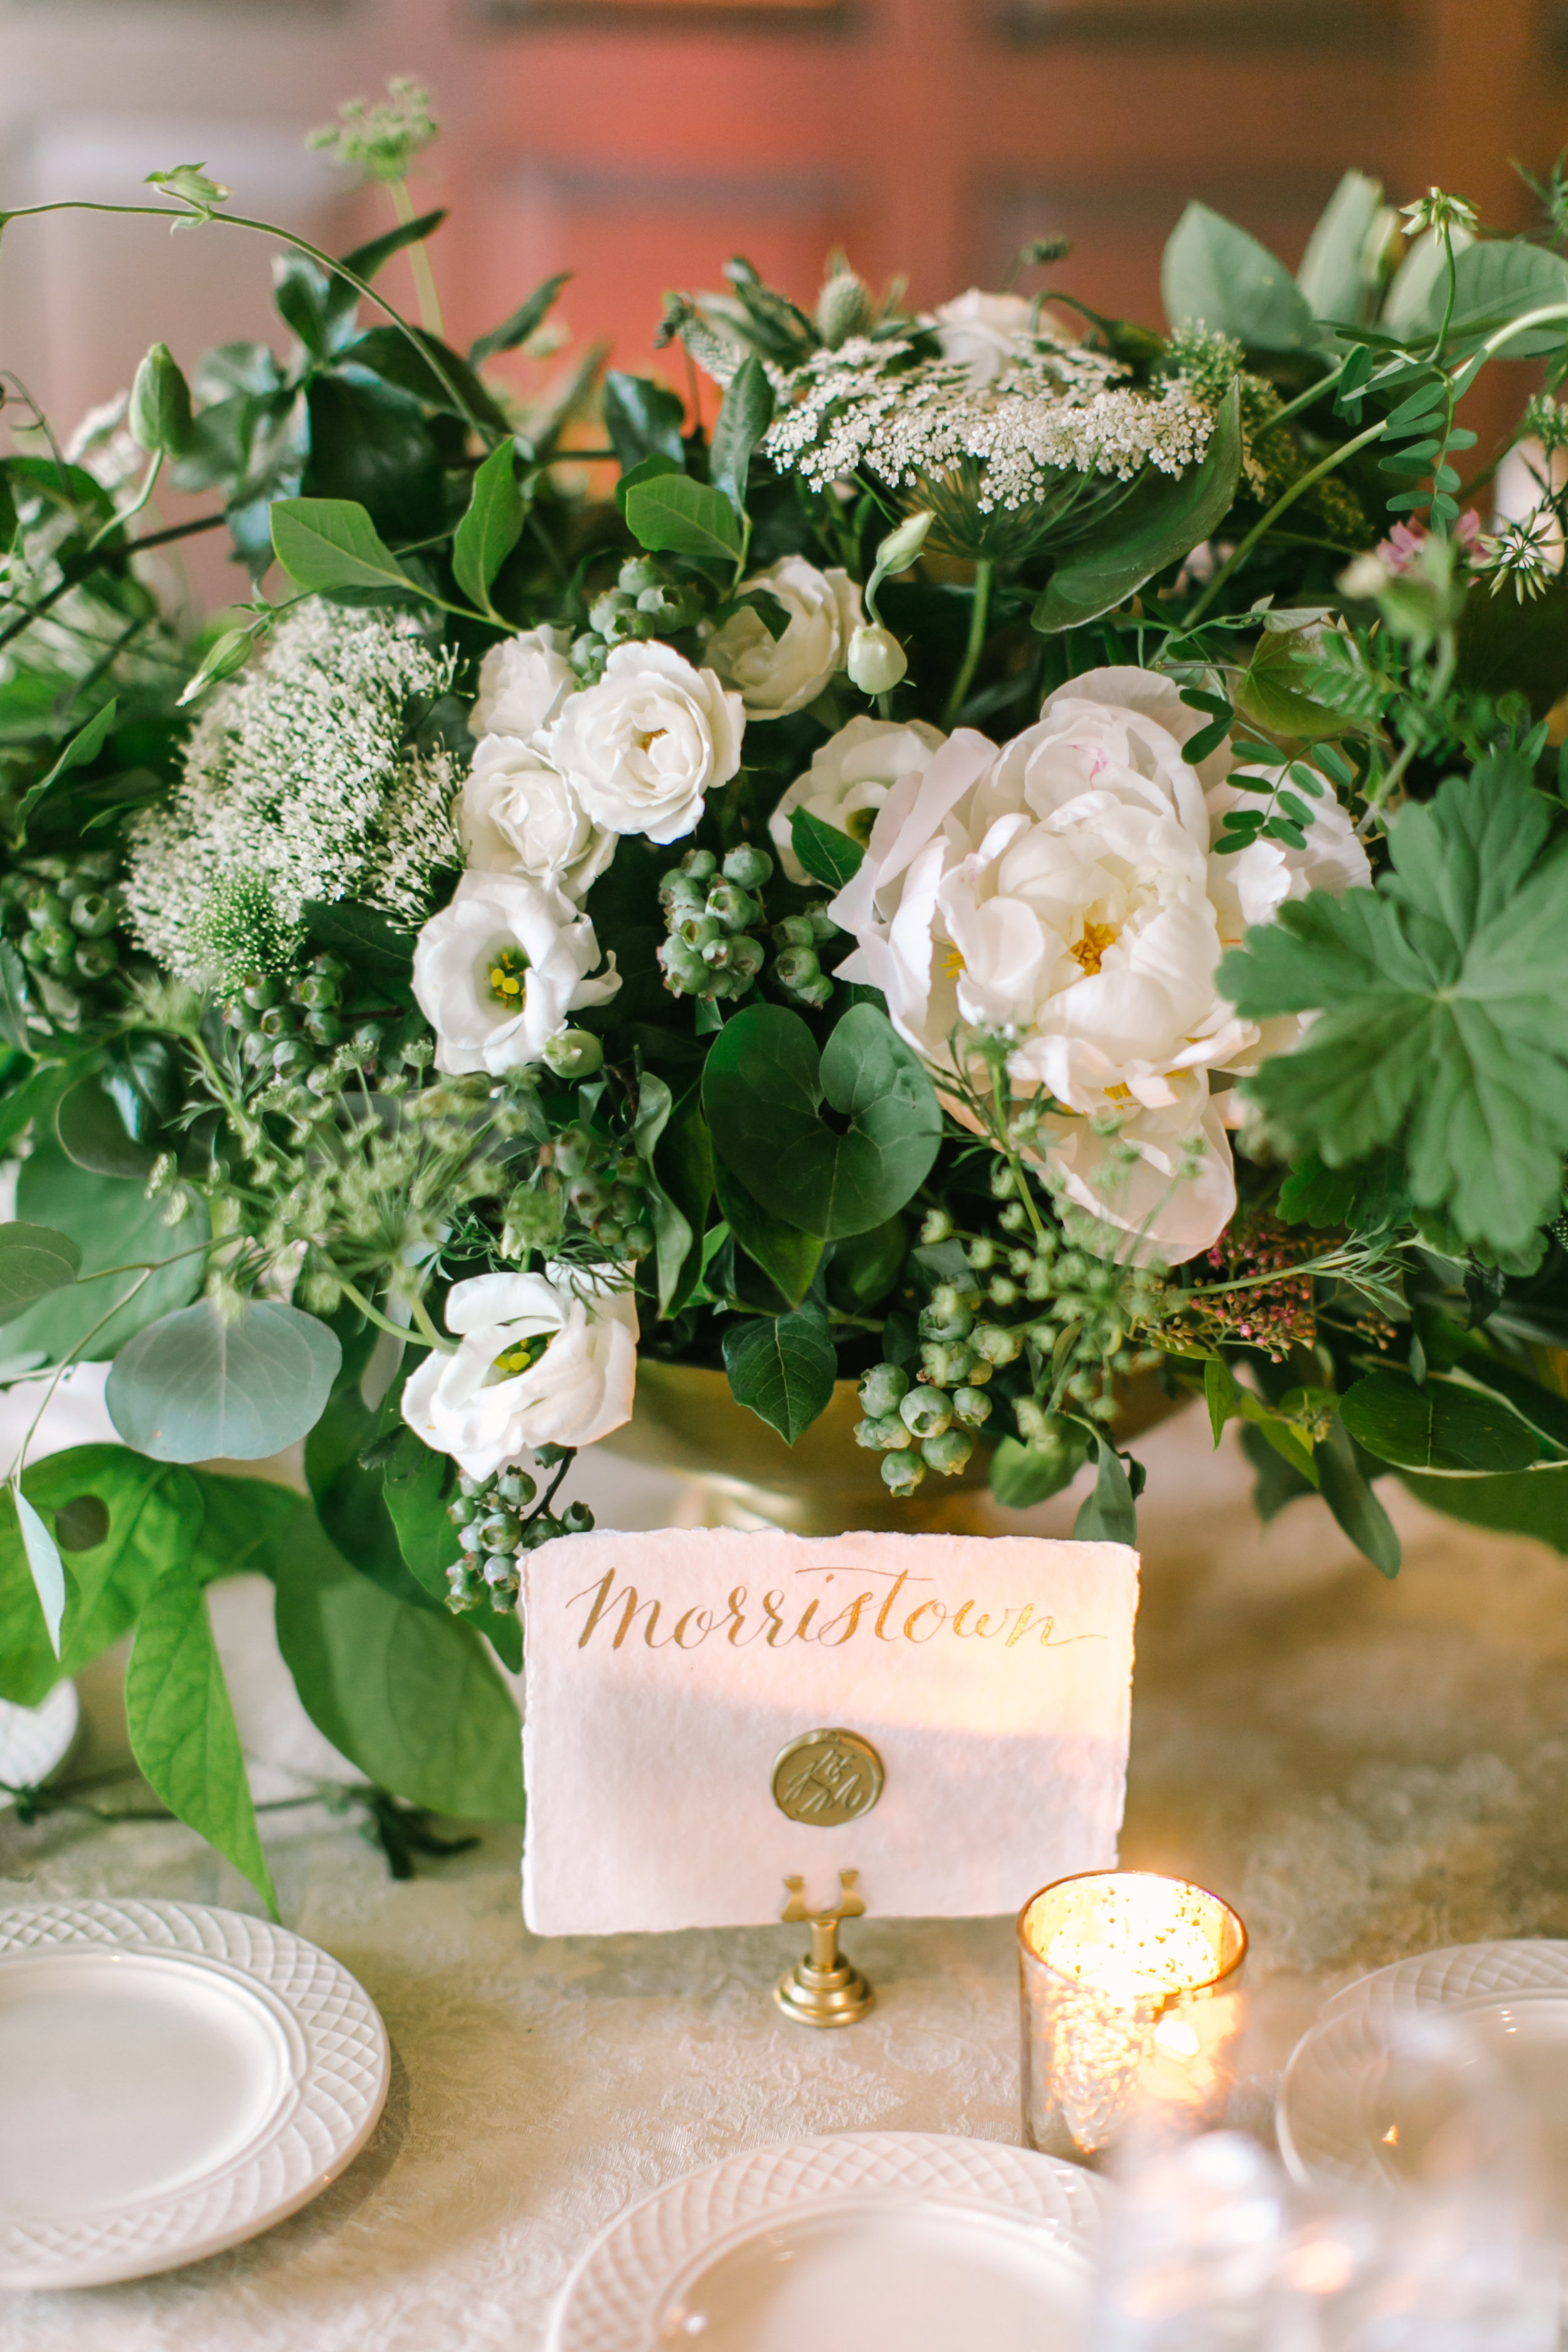 Events - We design floral arrangements for events of all sizes, from intimate occasions to large-scale celebrations.We provide full concept floral/event design, floral/event decor installations, and custom order flowers for each and every event.